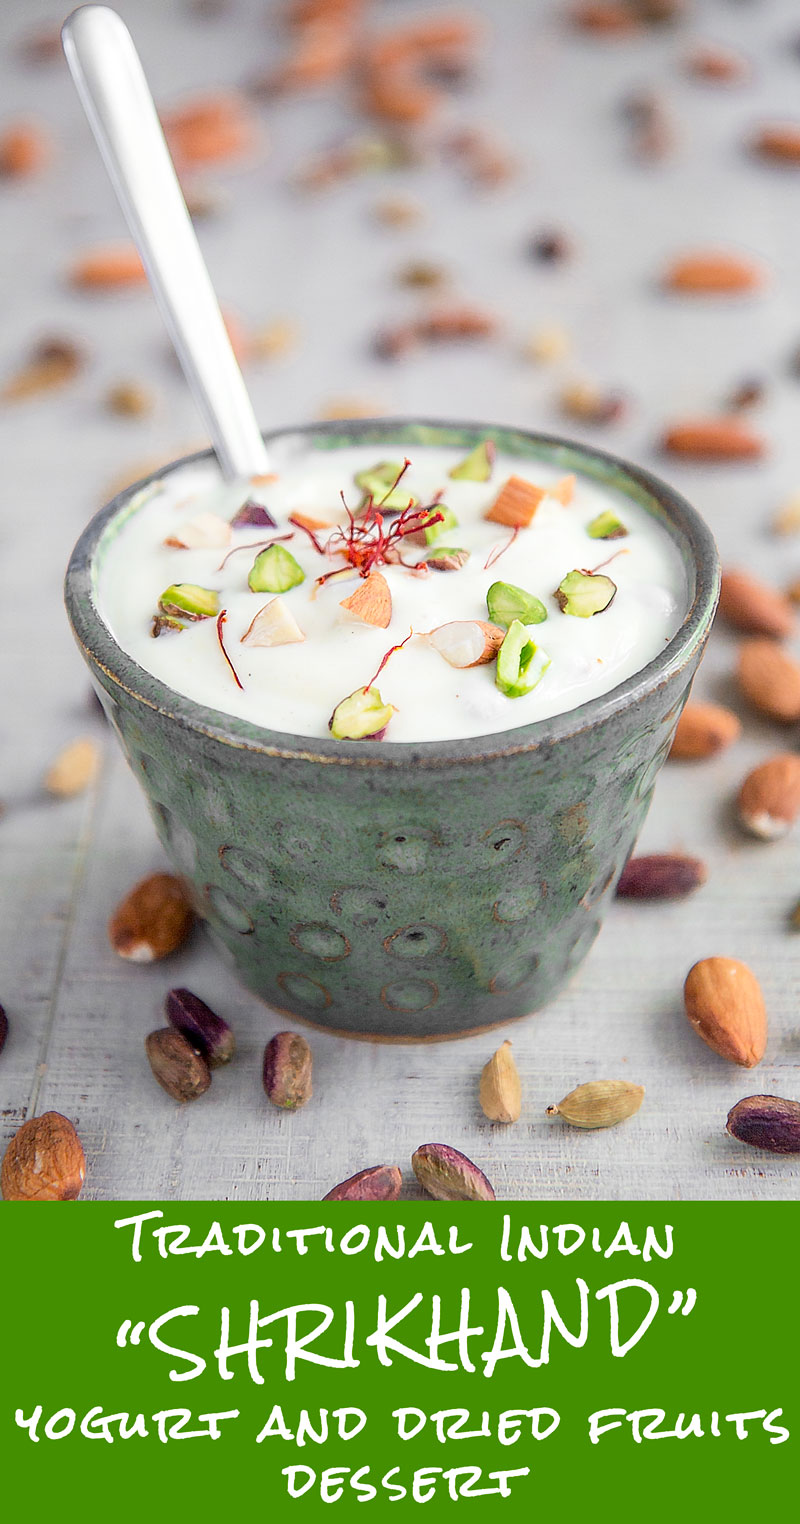 SHRIKHAND RECIPE - Indian sweet & spicy flavored yogurt